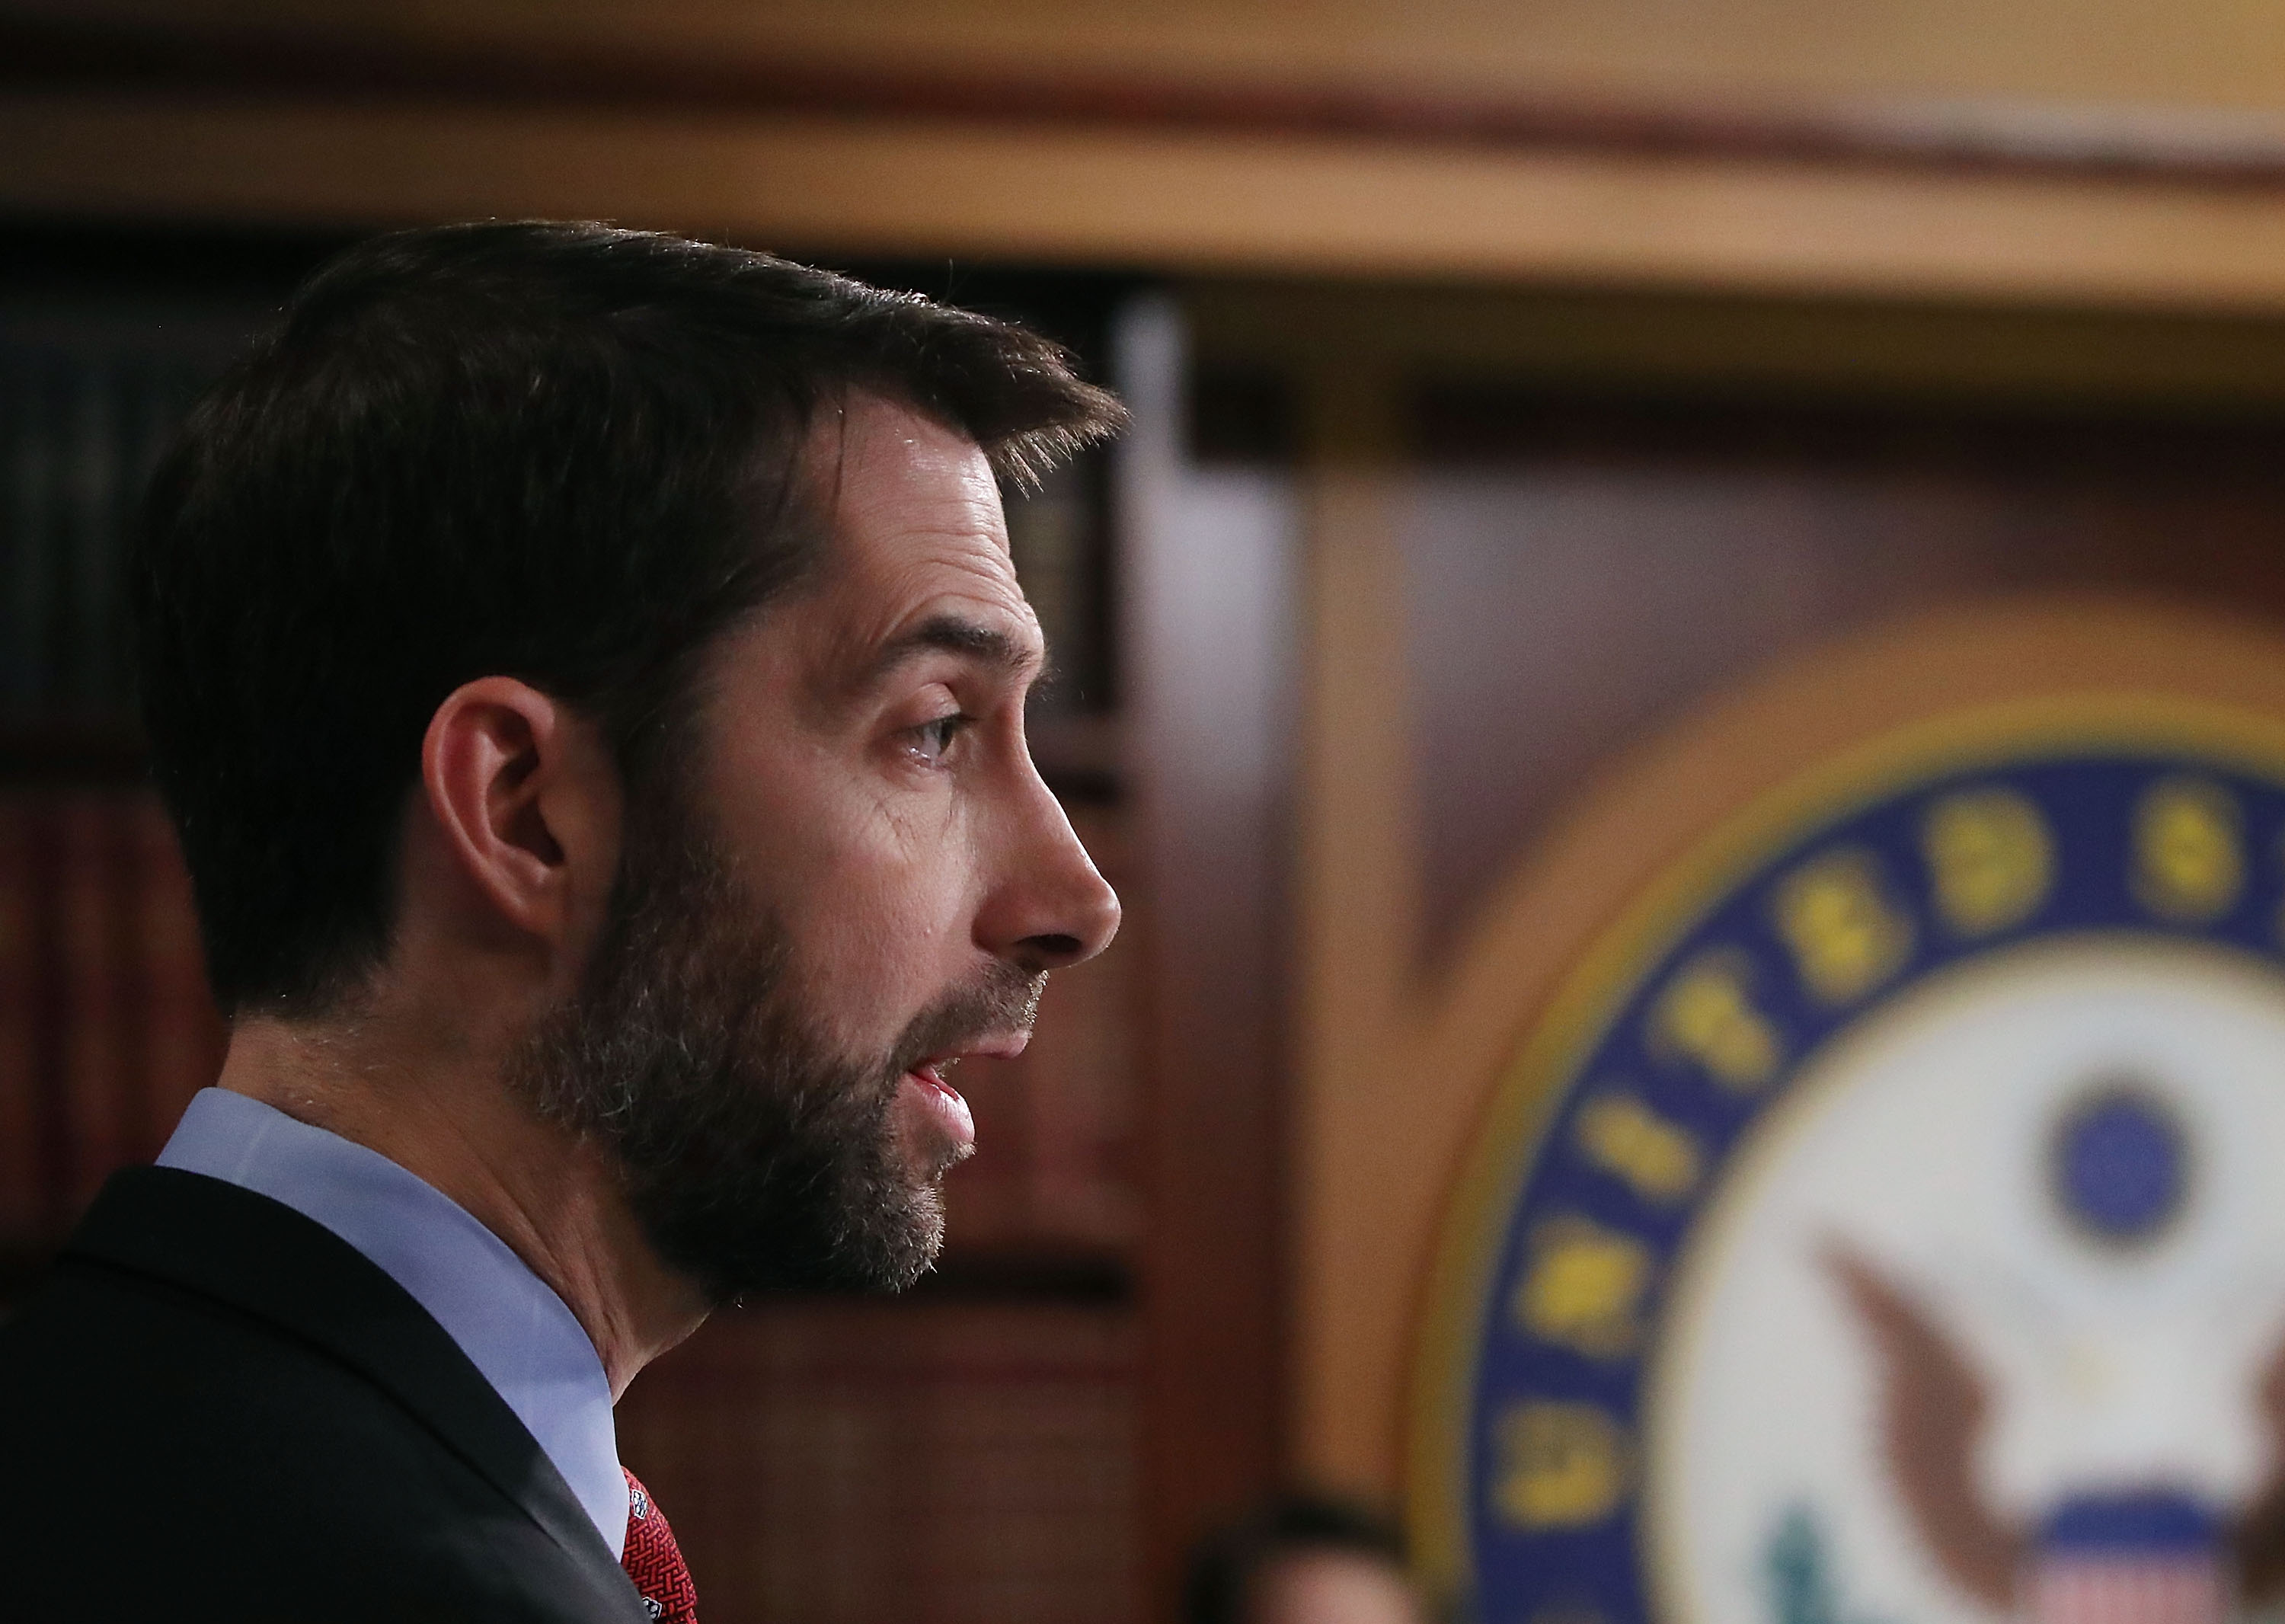 Sen. Tom Cotton (R-AR) speaks to the media during a news conference on Capitol Hill, February 7, 2017 in Washington, DC.